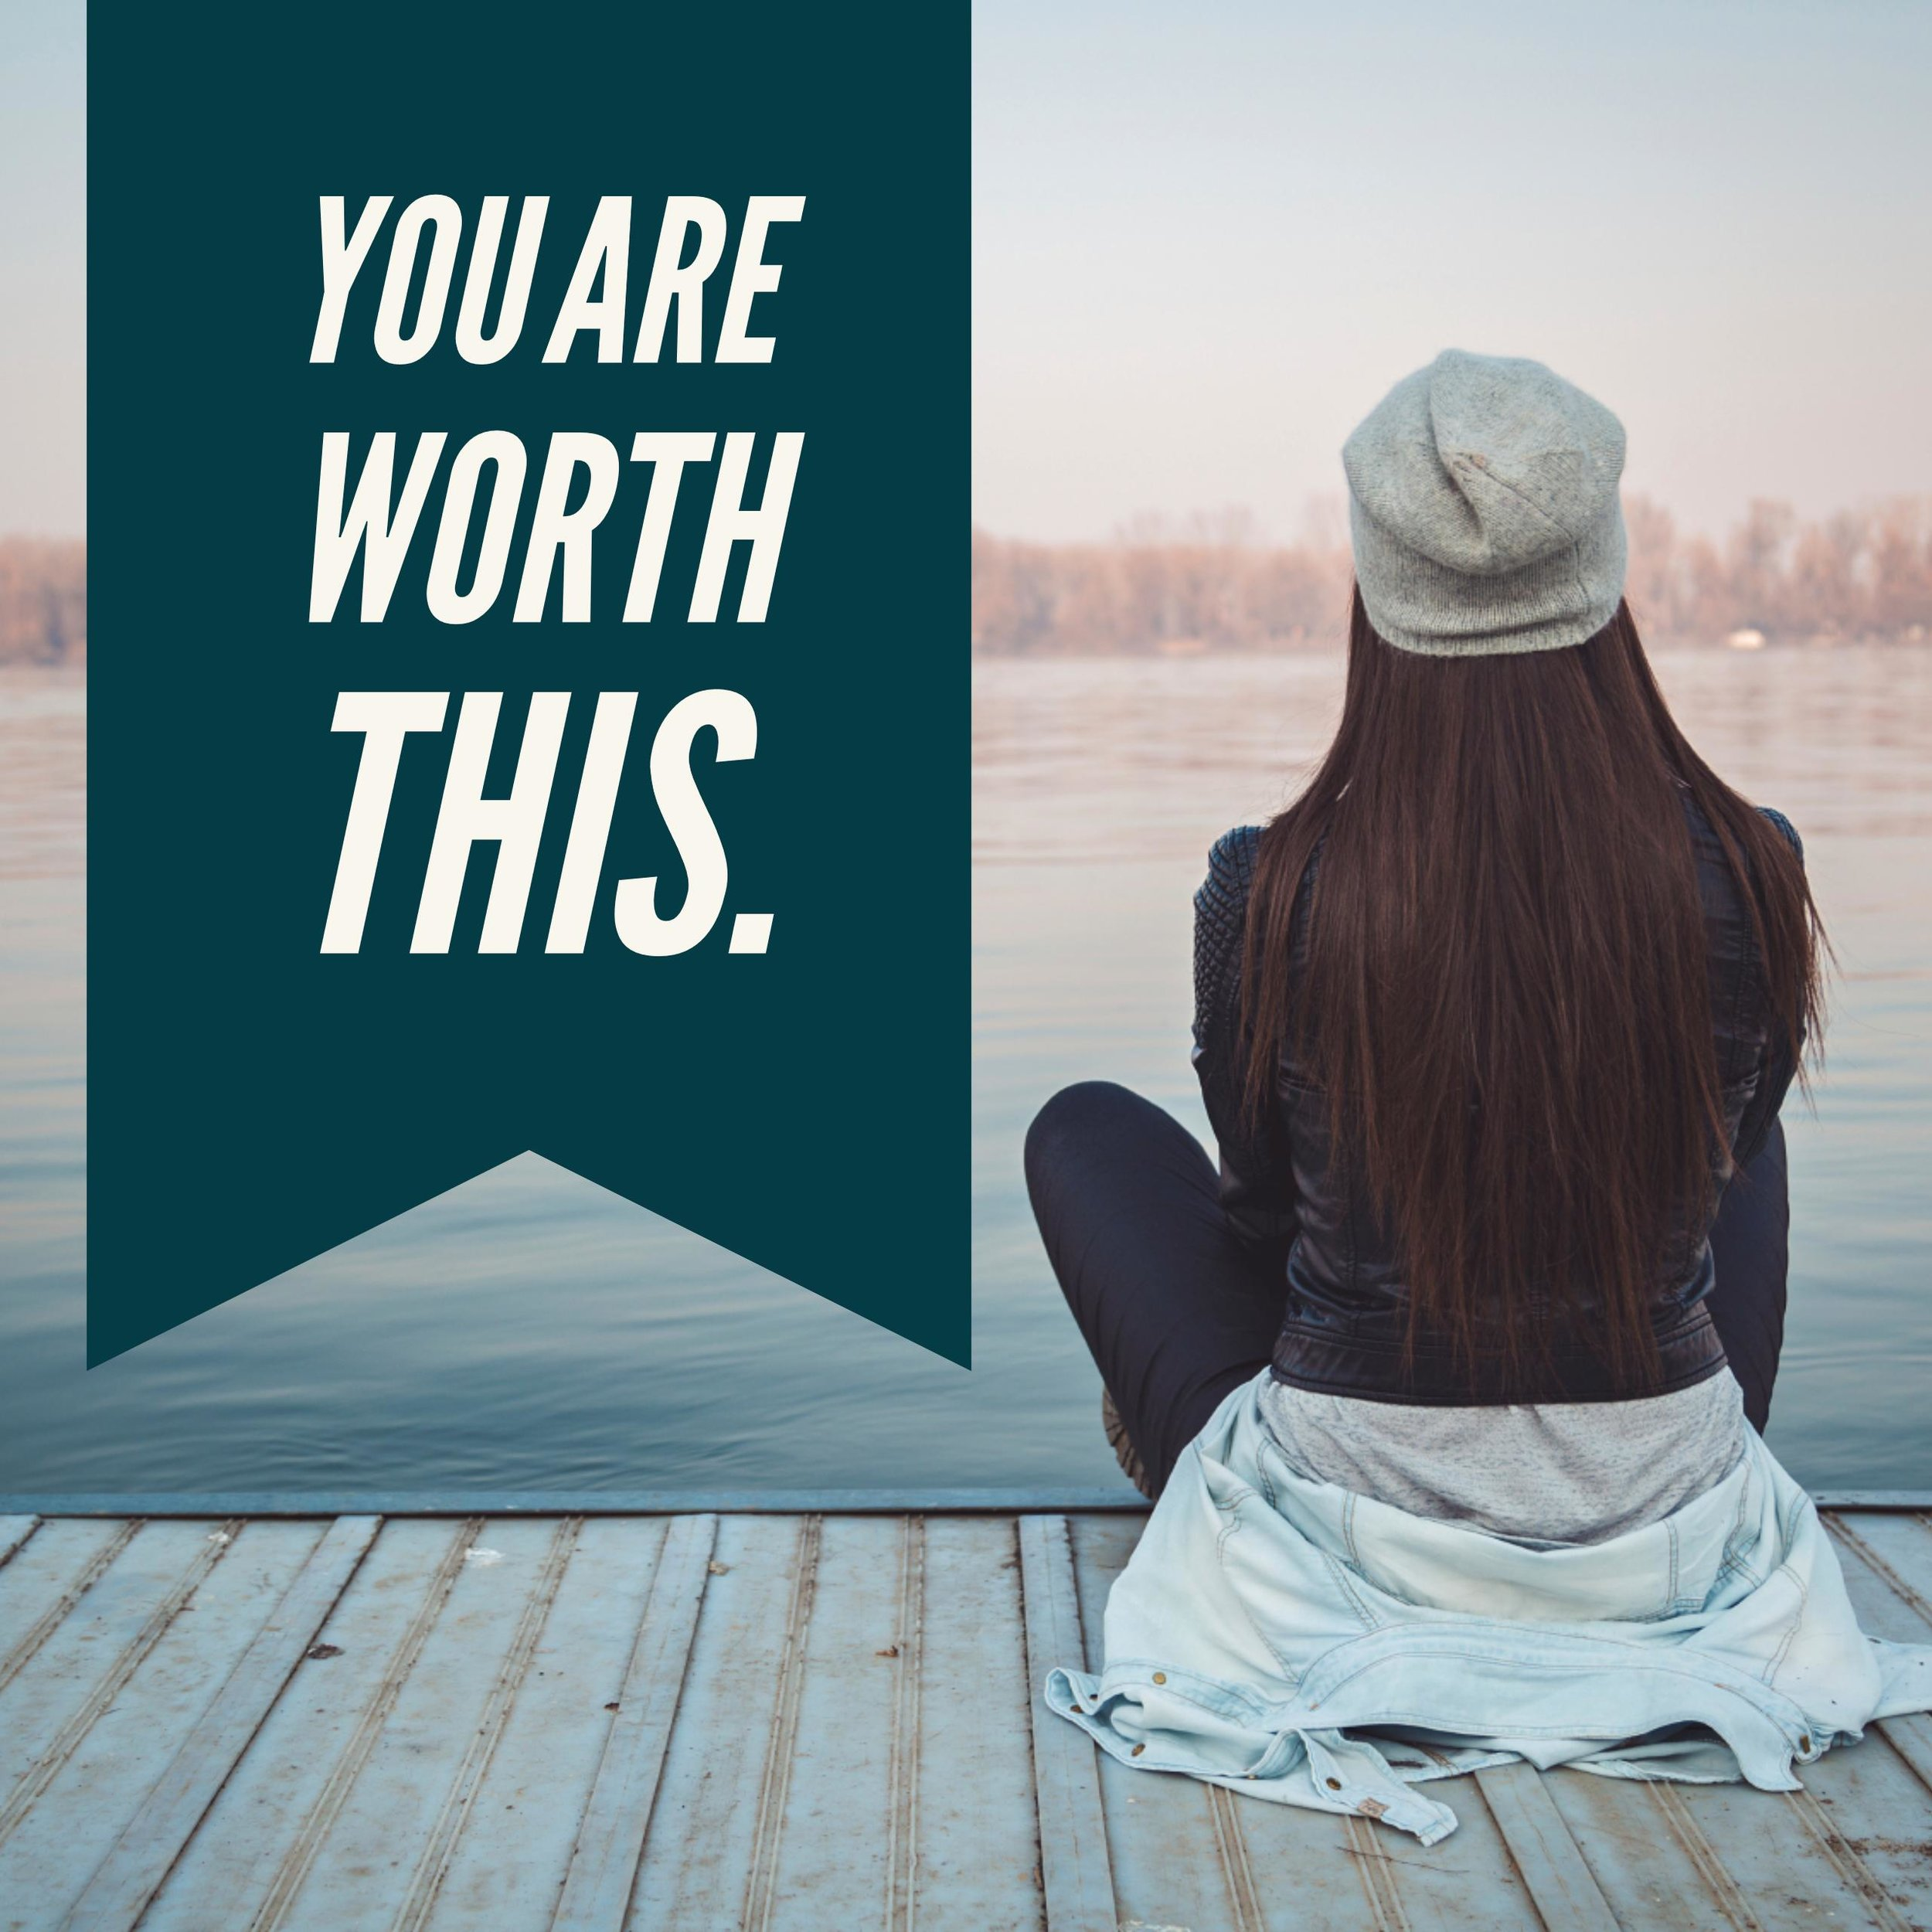 YOU ARE WORTH THIS